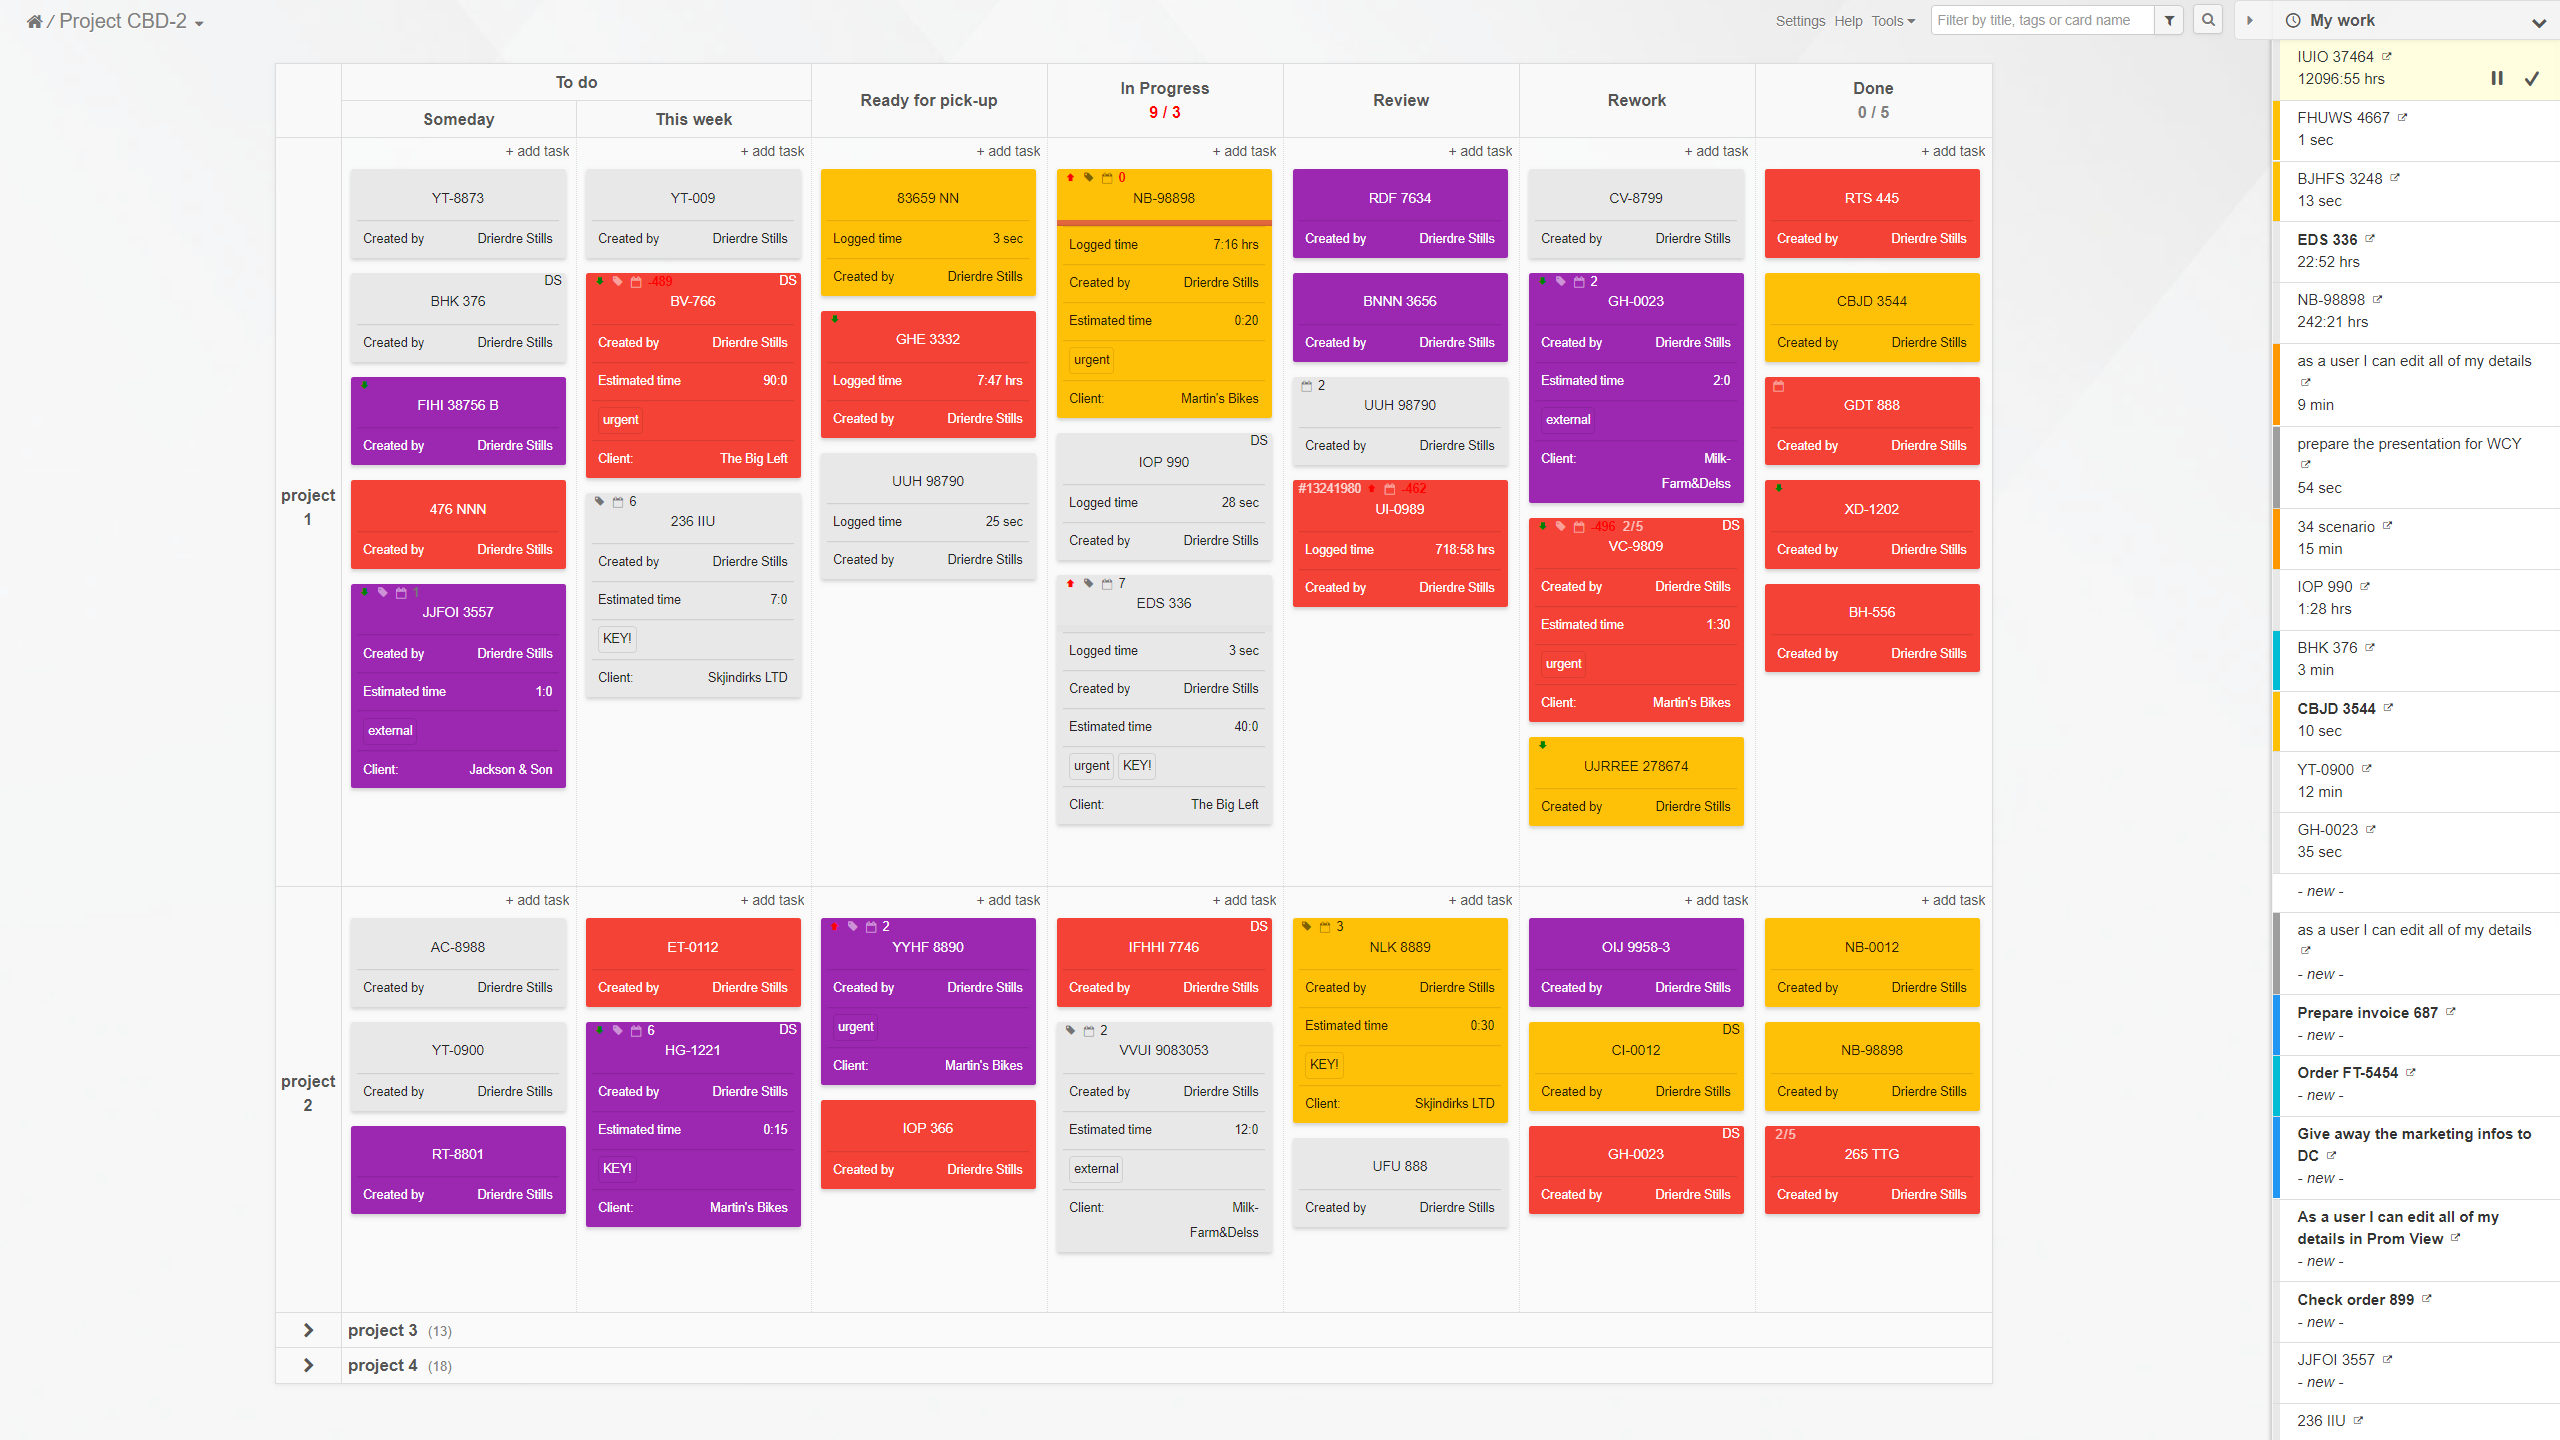 An example of a Kanban Tool board with a user's own background image. My Work widget, allowing to manage own work across all boards is visible on the right side of the board.